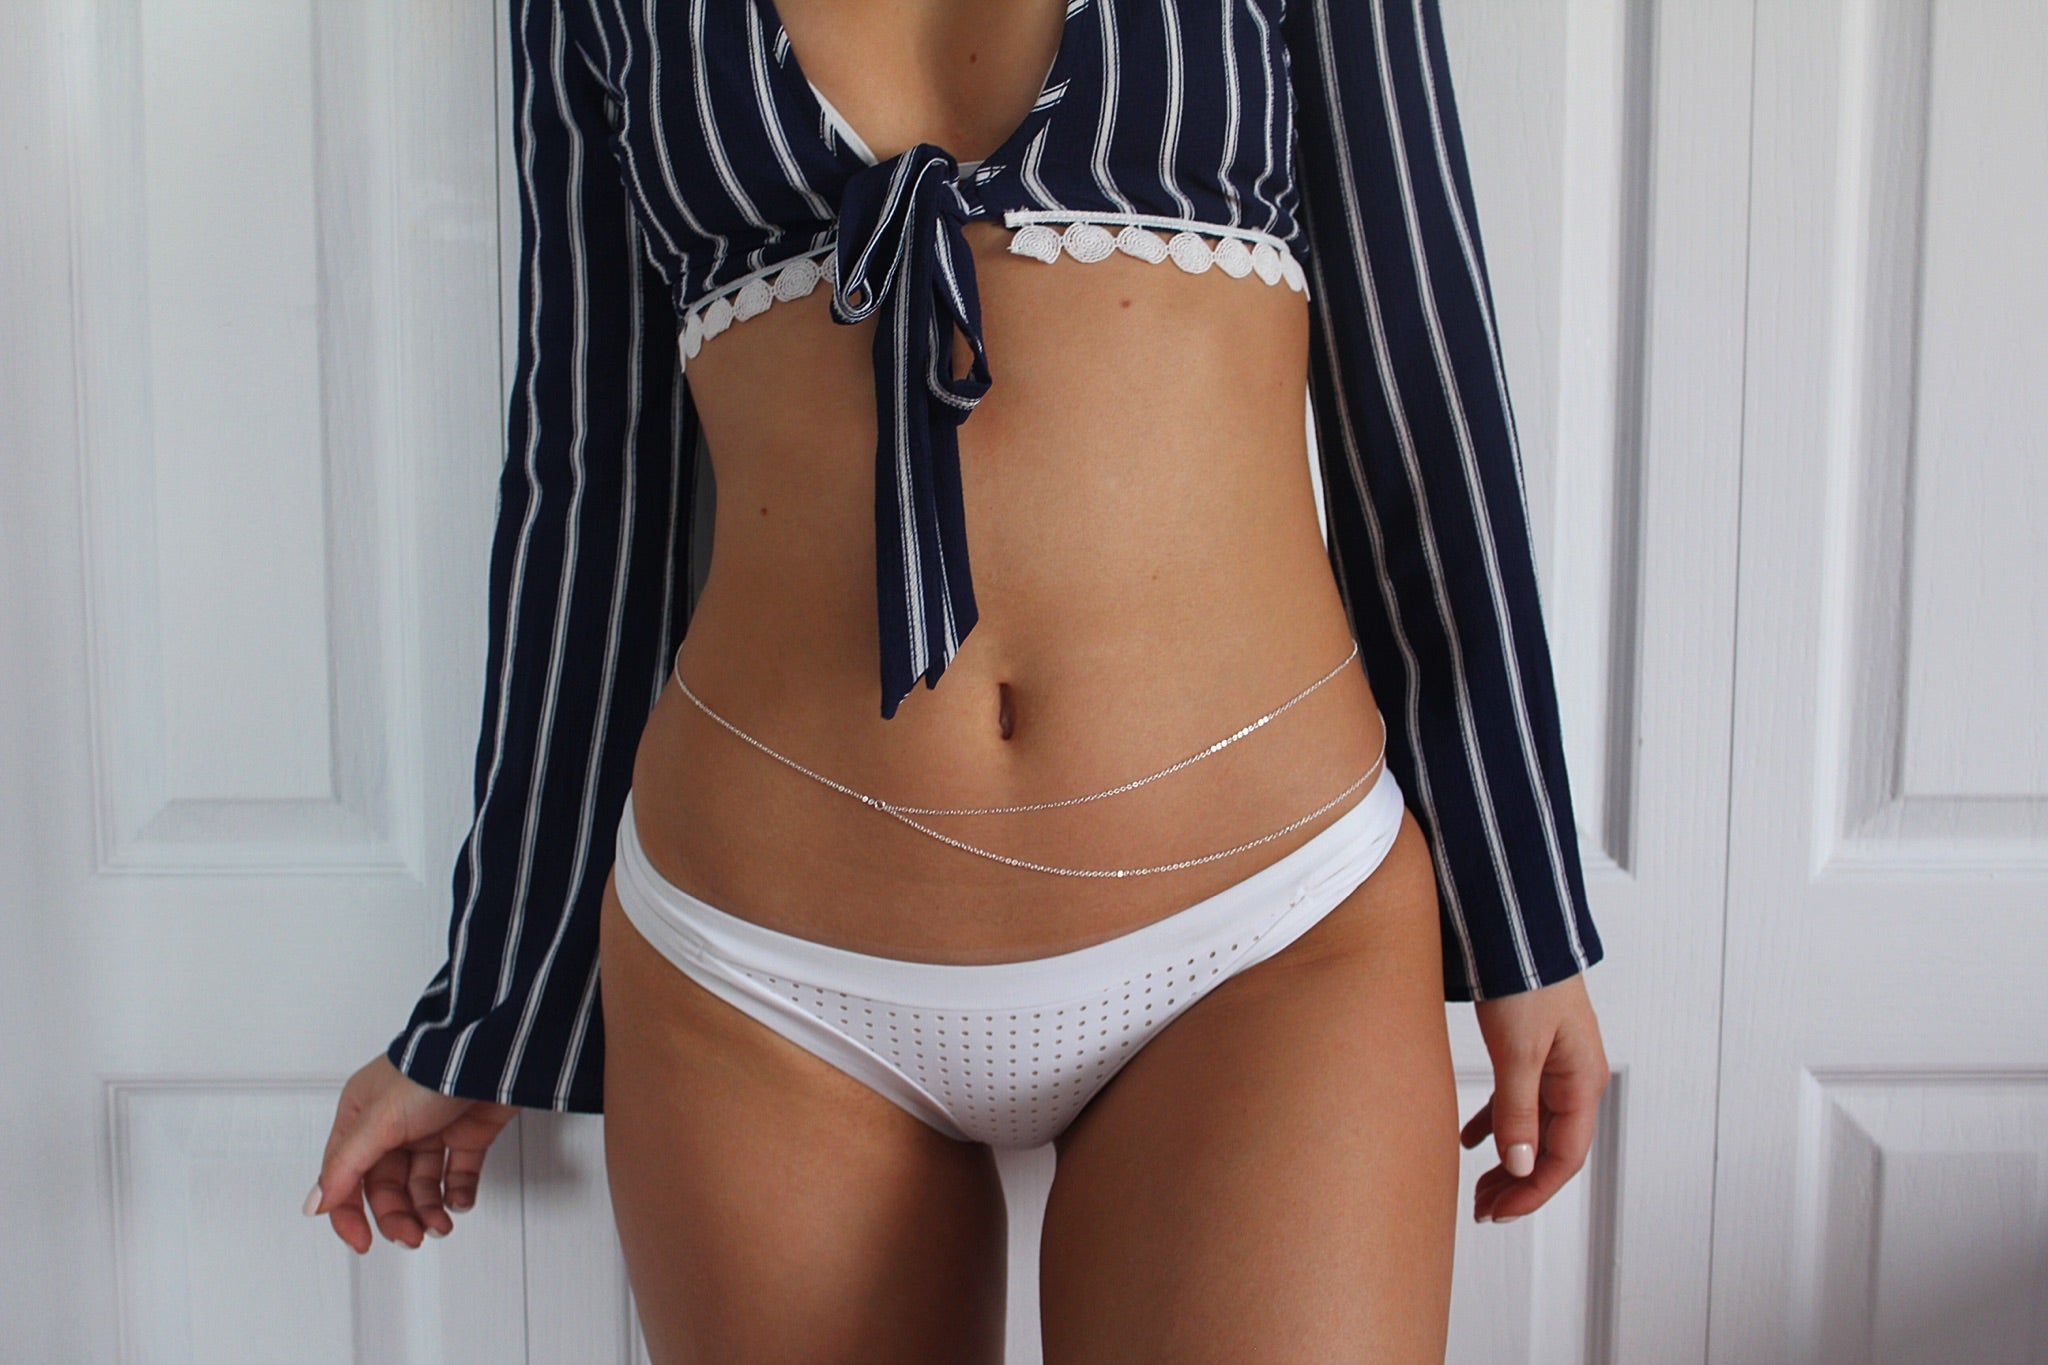 Elegance Belly Chain